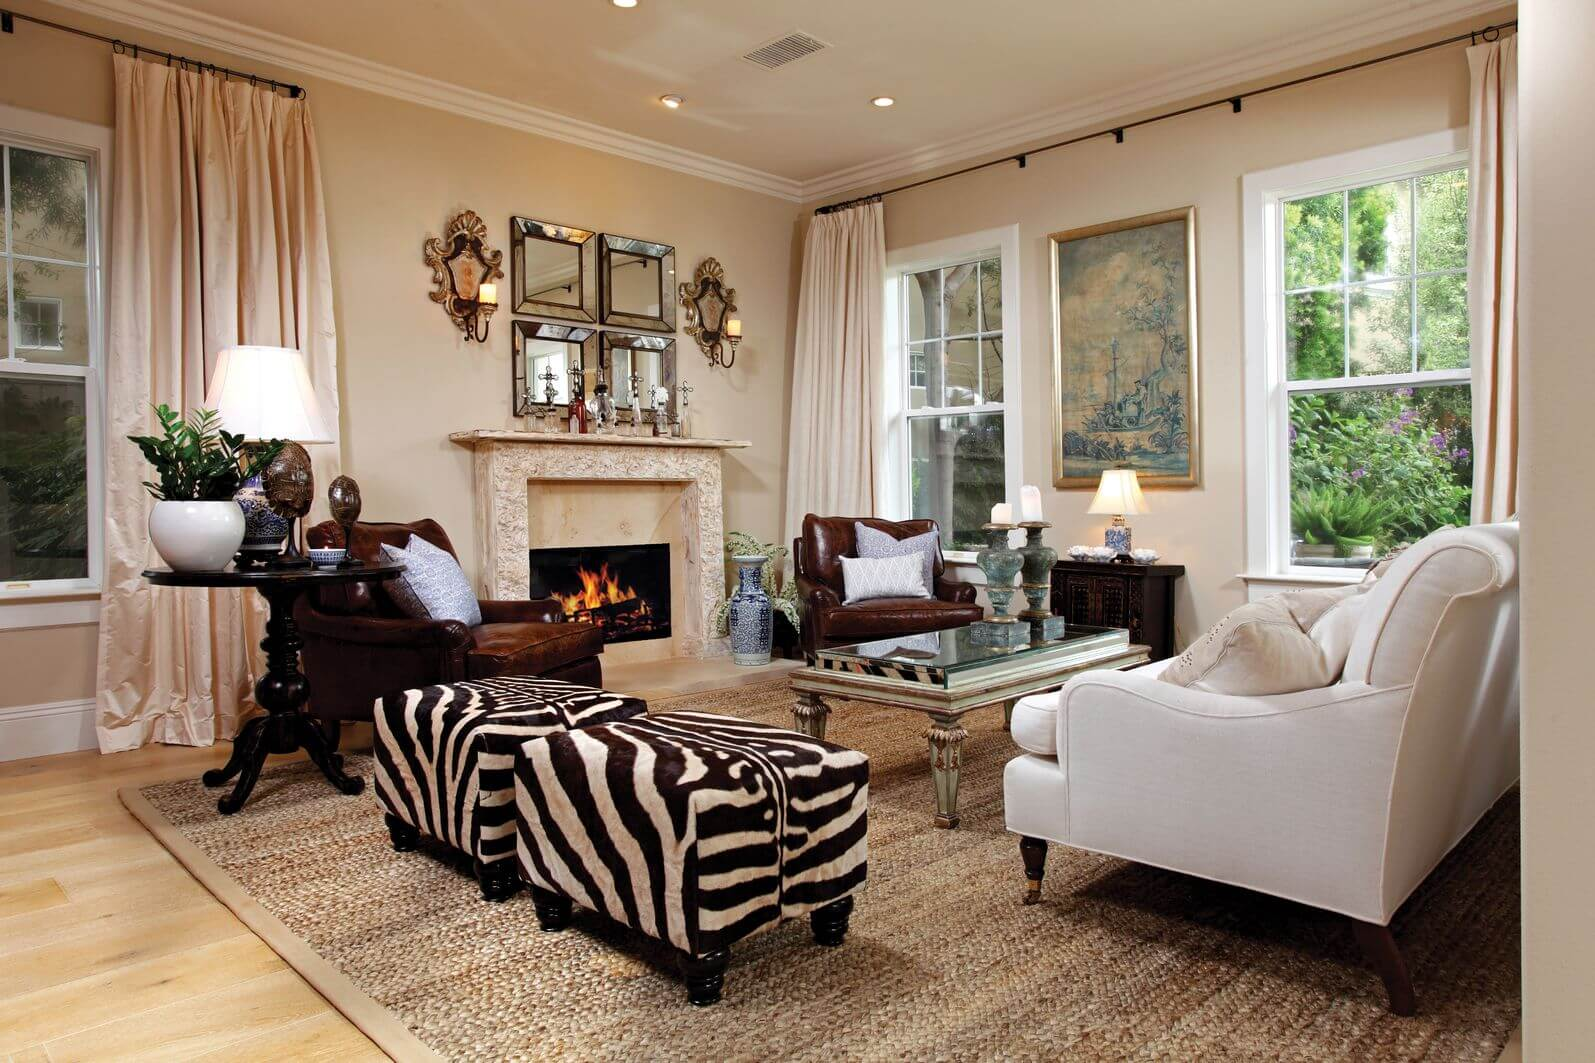 Red And White Living Room Decorating 17 Zebra Living Room Decor Ideas Pictures